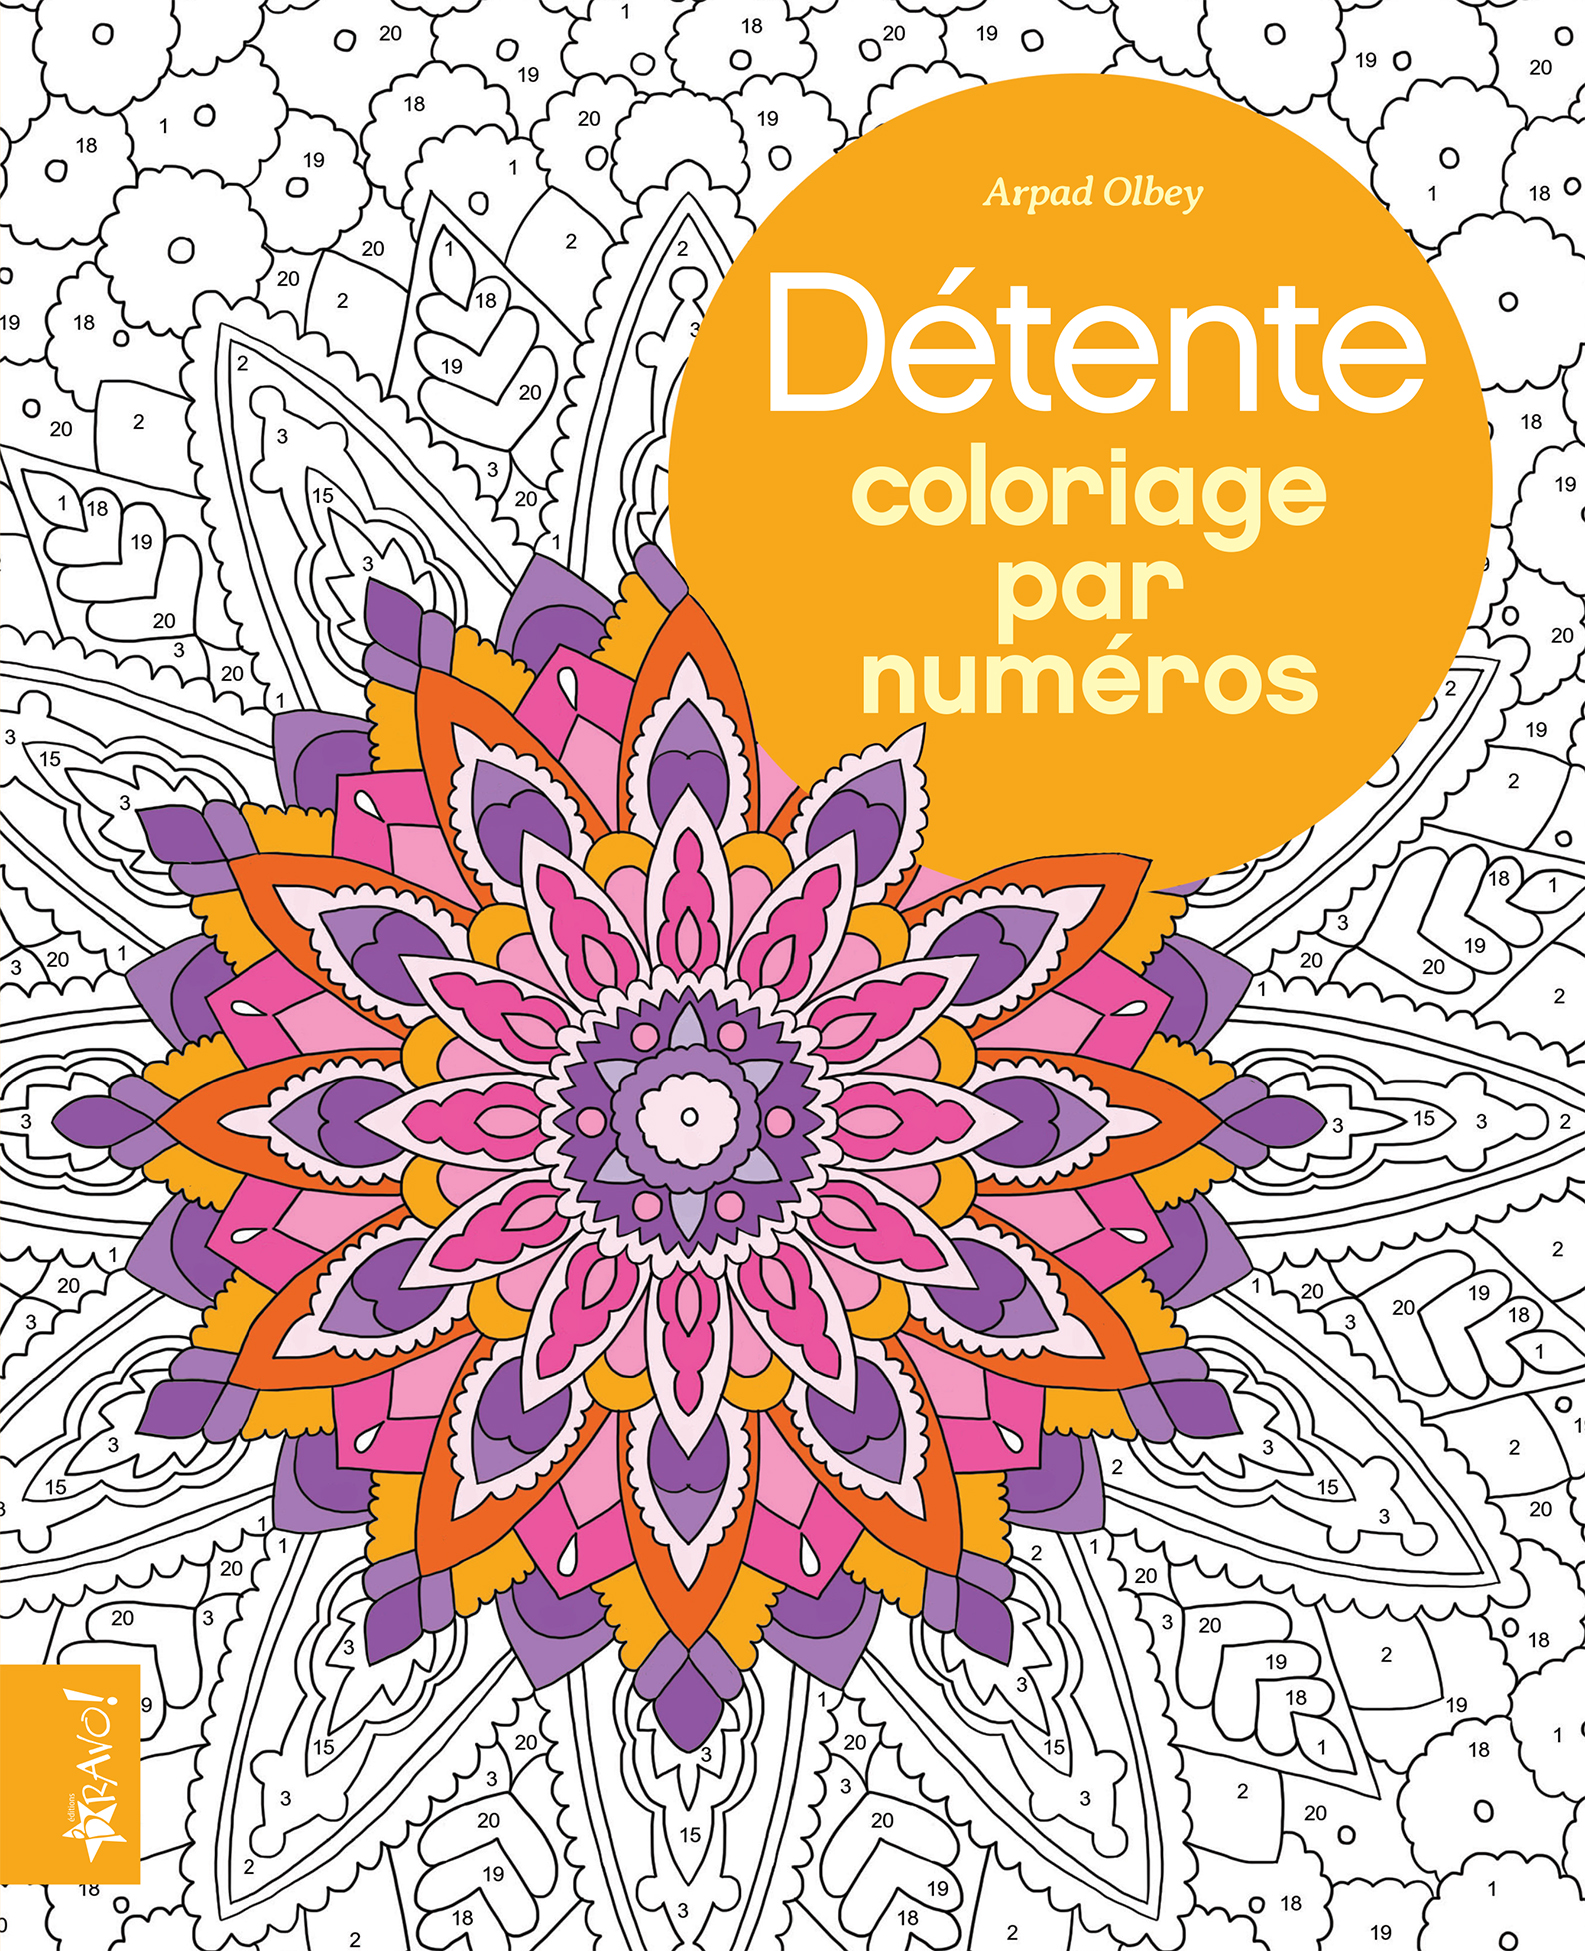 301_ColoriageNumerosDetente_C1